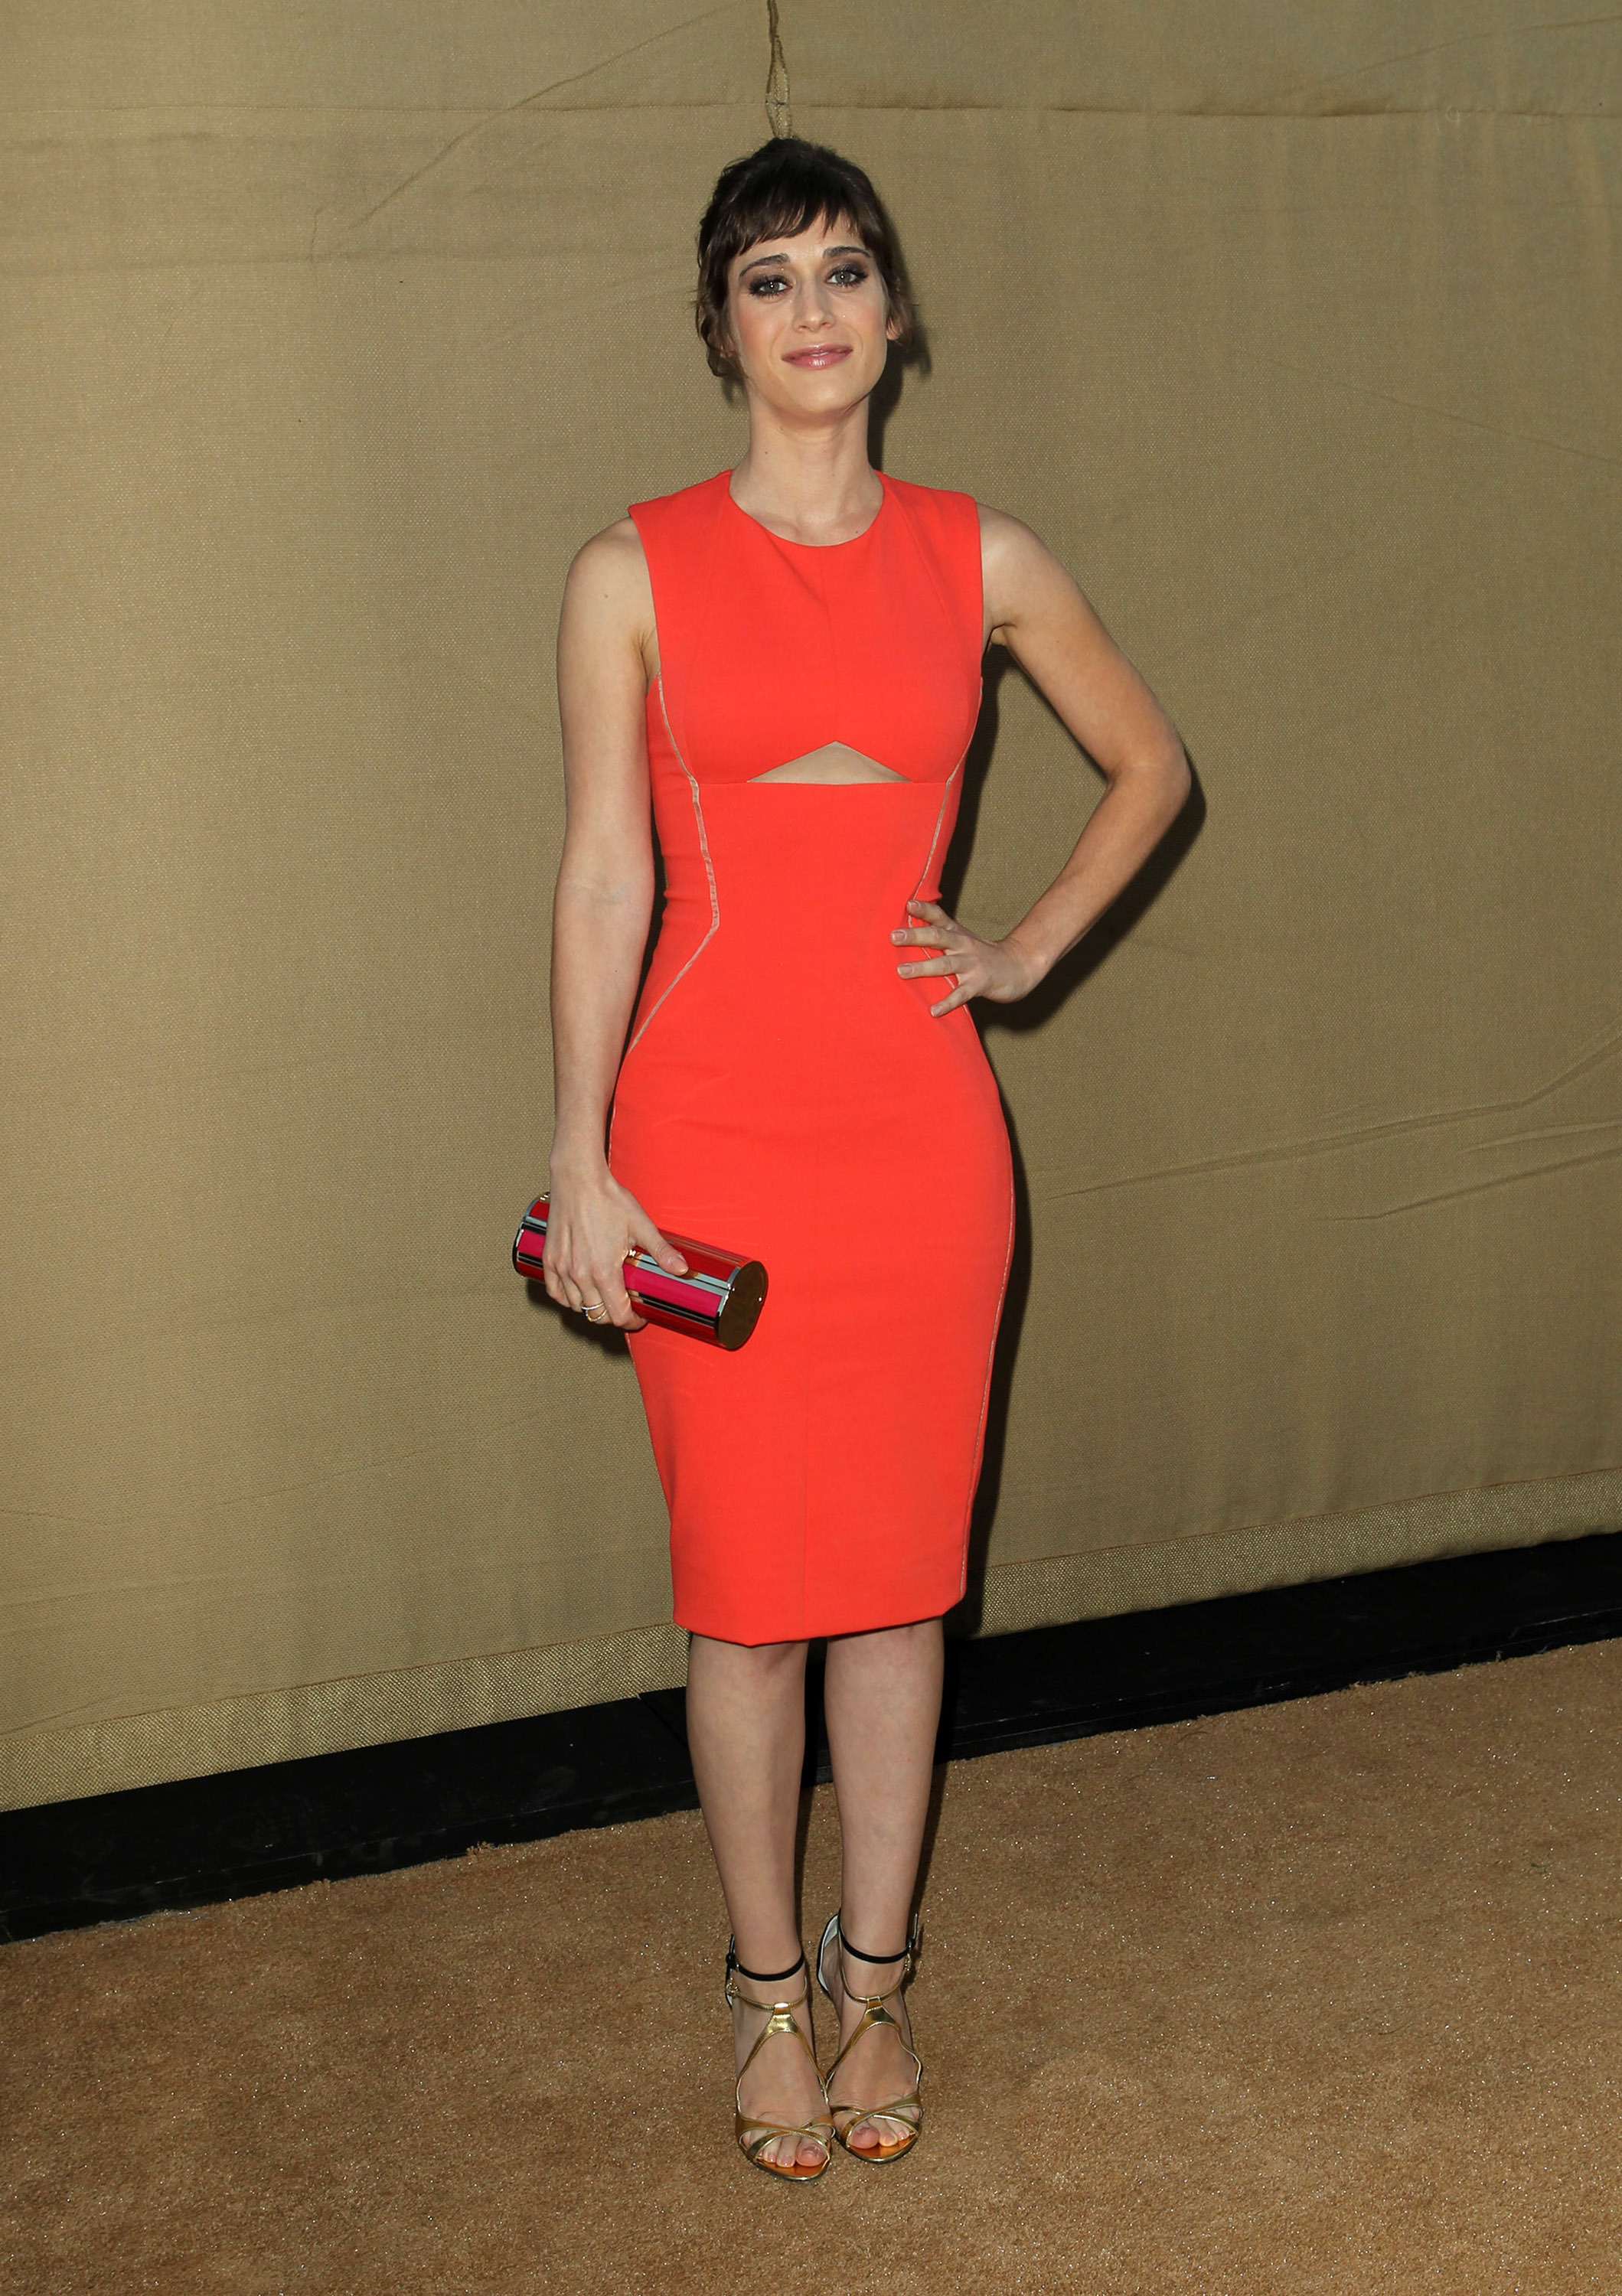 Style Crush: The Sartorial Transformation of Lizzy Caplan ...